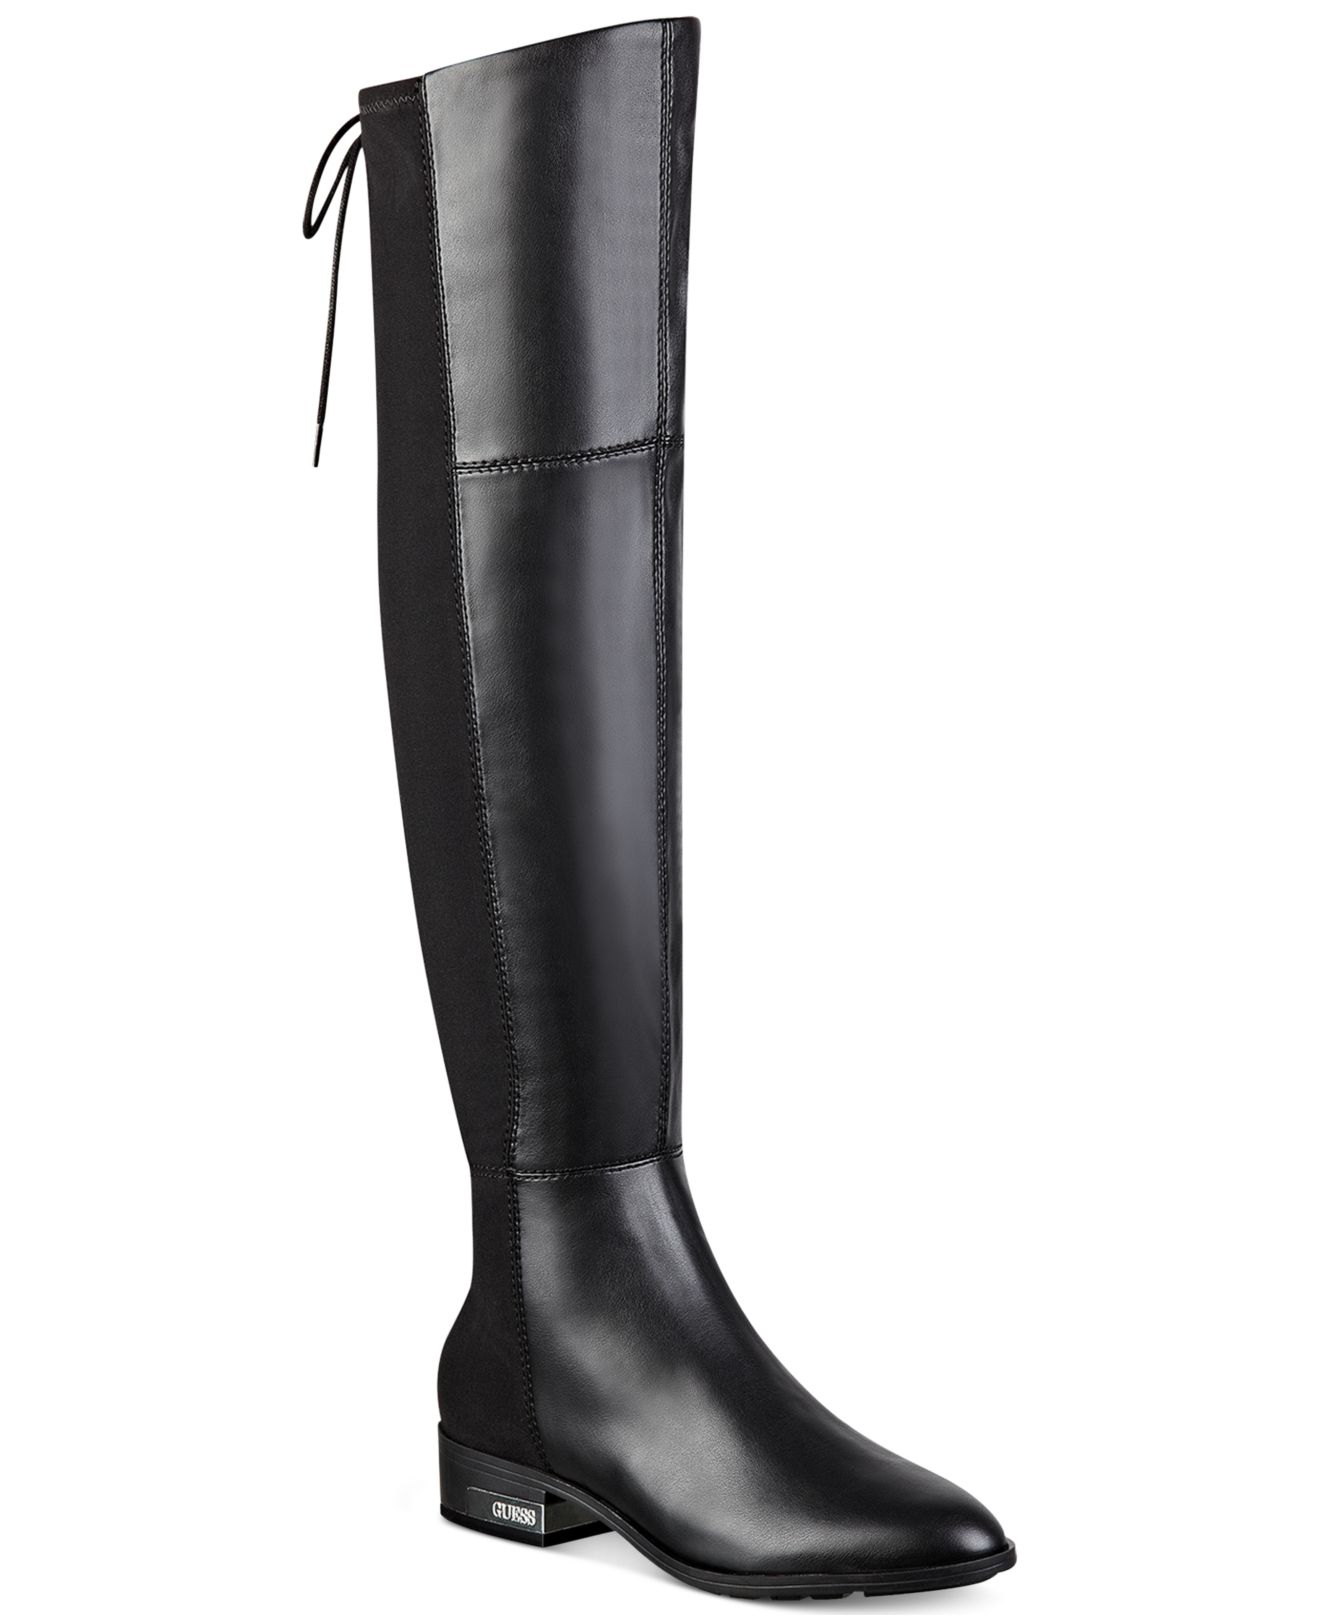 Zoe Over-the-knee Boots in Black